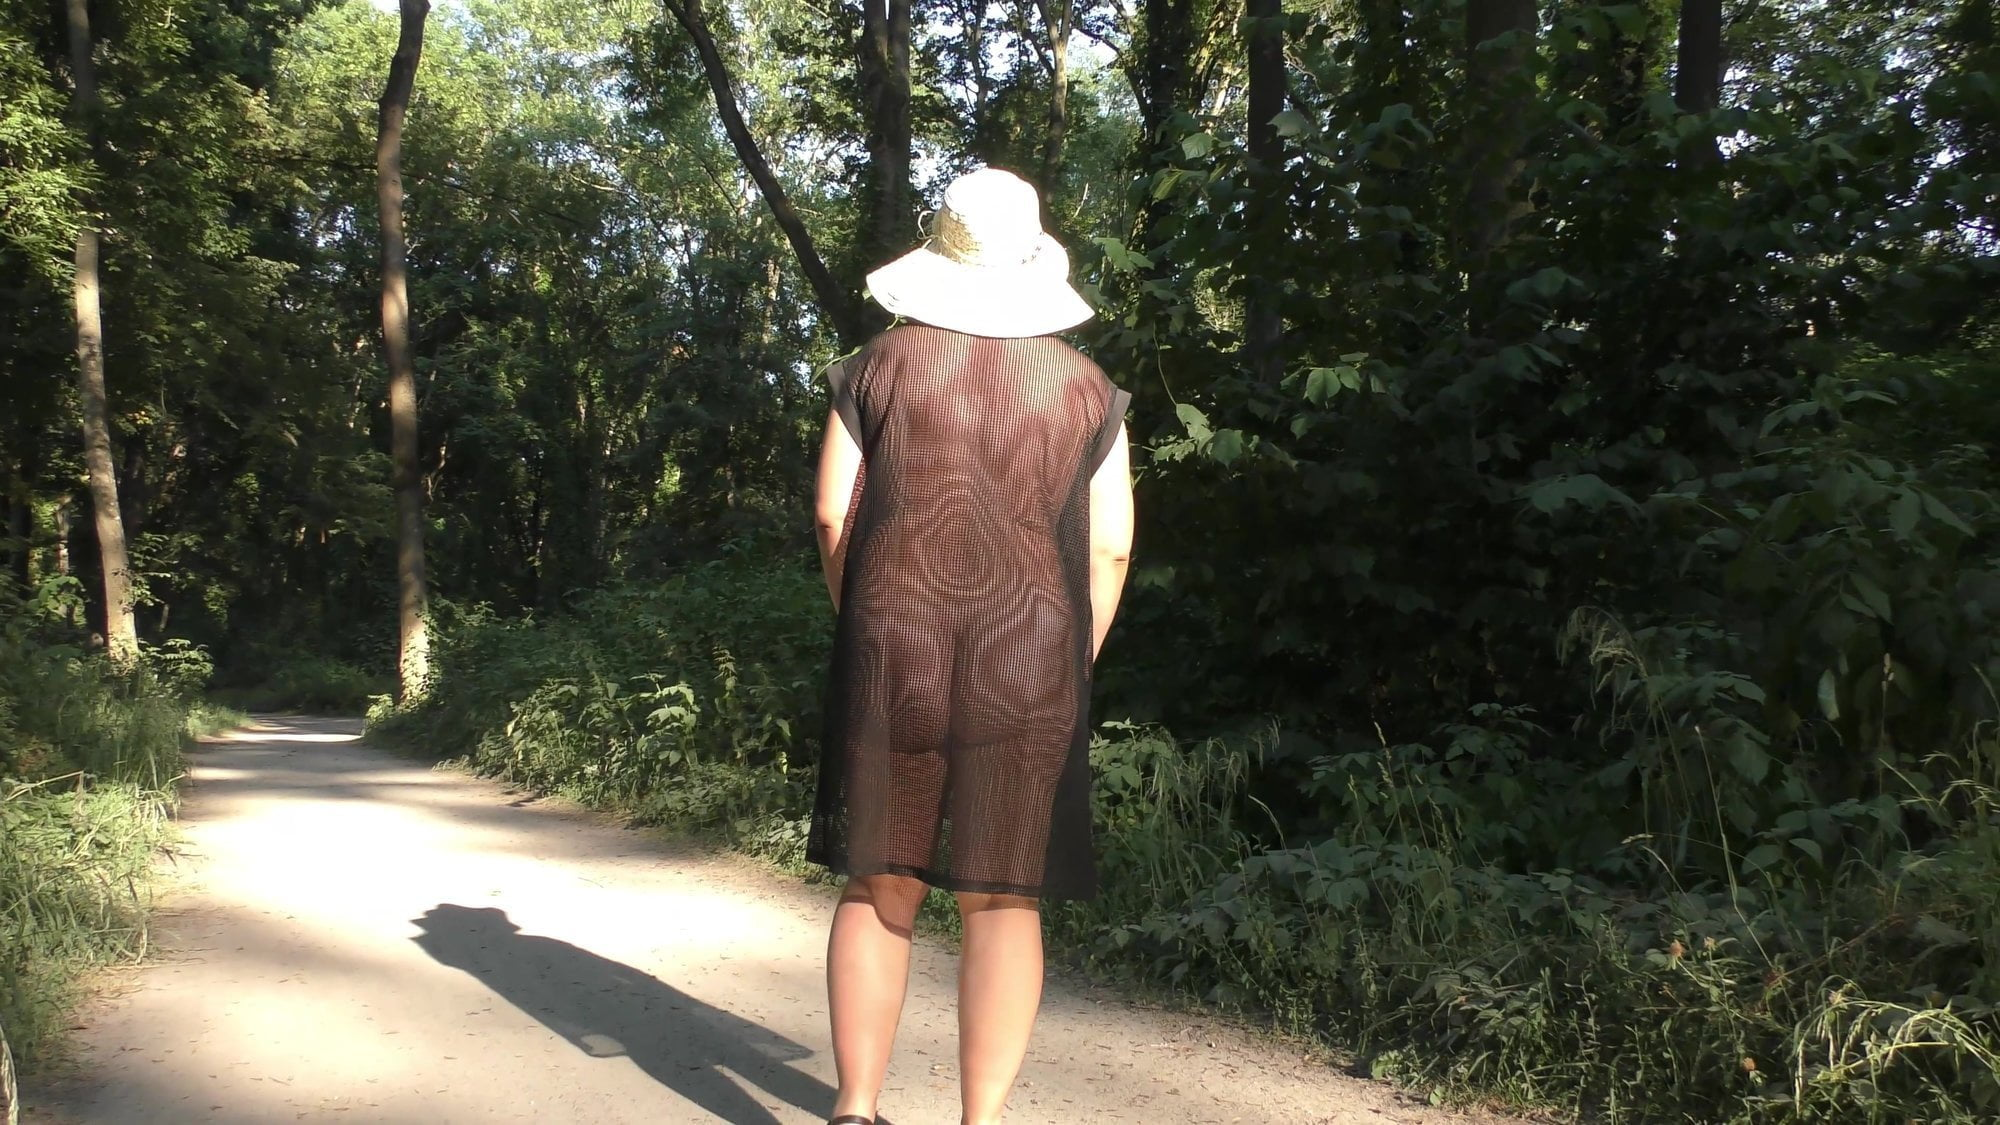 Wife in Transparent Dress in Public Park, Porn b7: xHamster